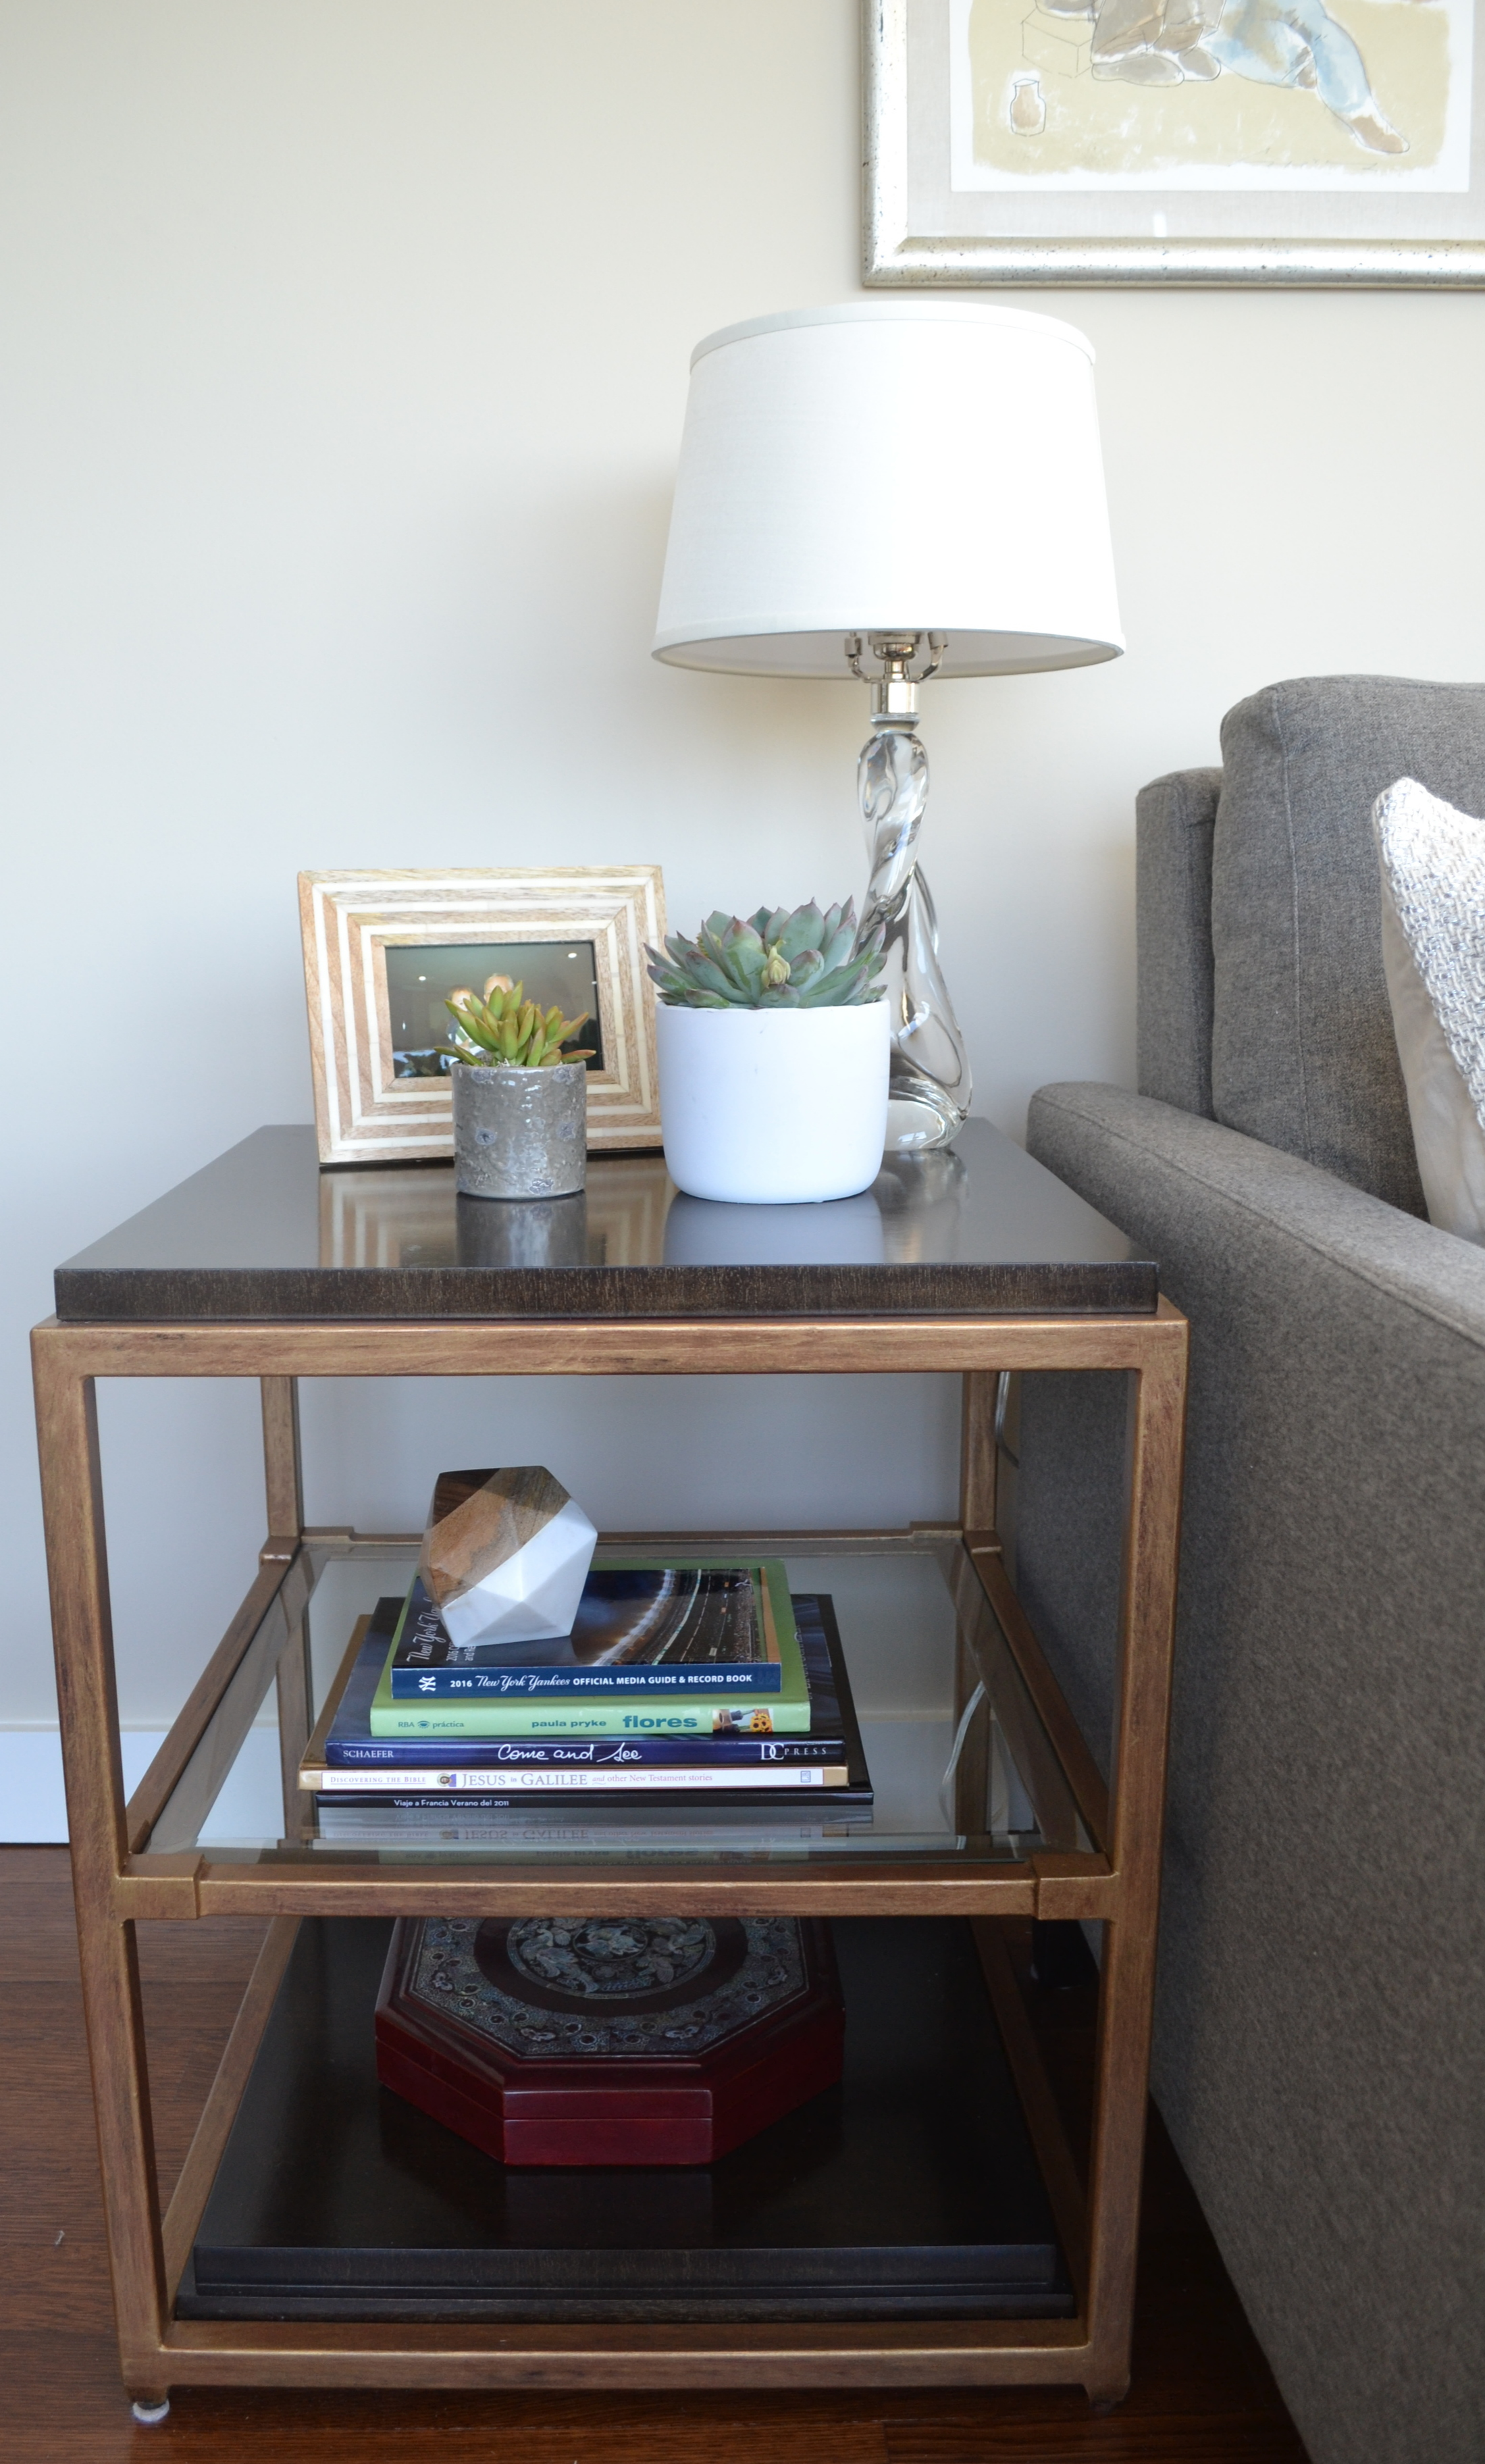 We loved the mix of brass, glass and wood on these end tables, and the fact that they had a shelf to provide additional storage.